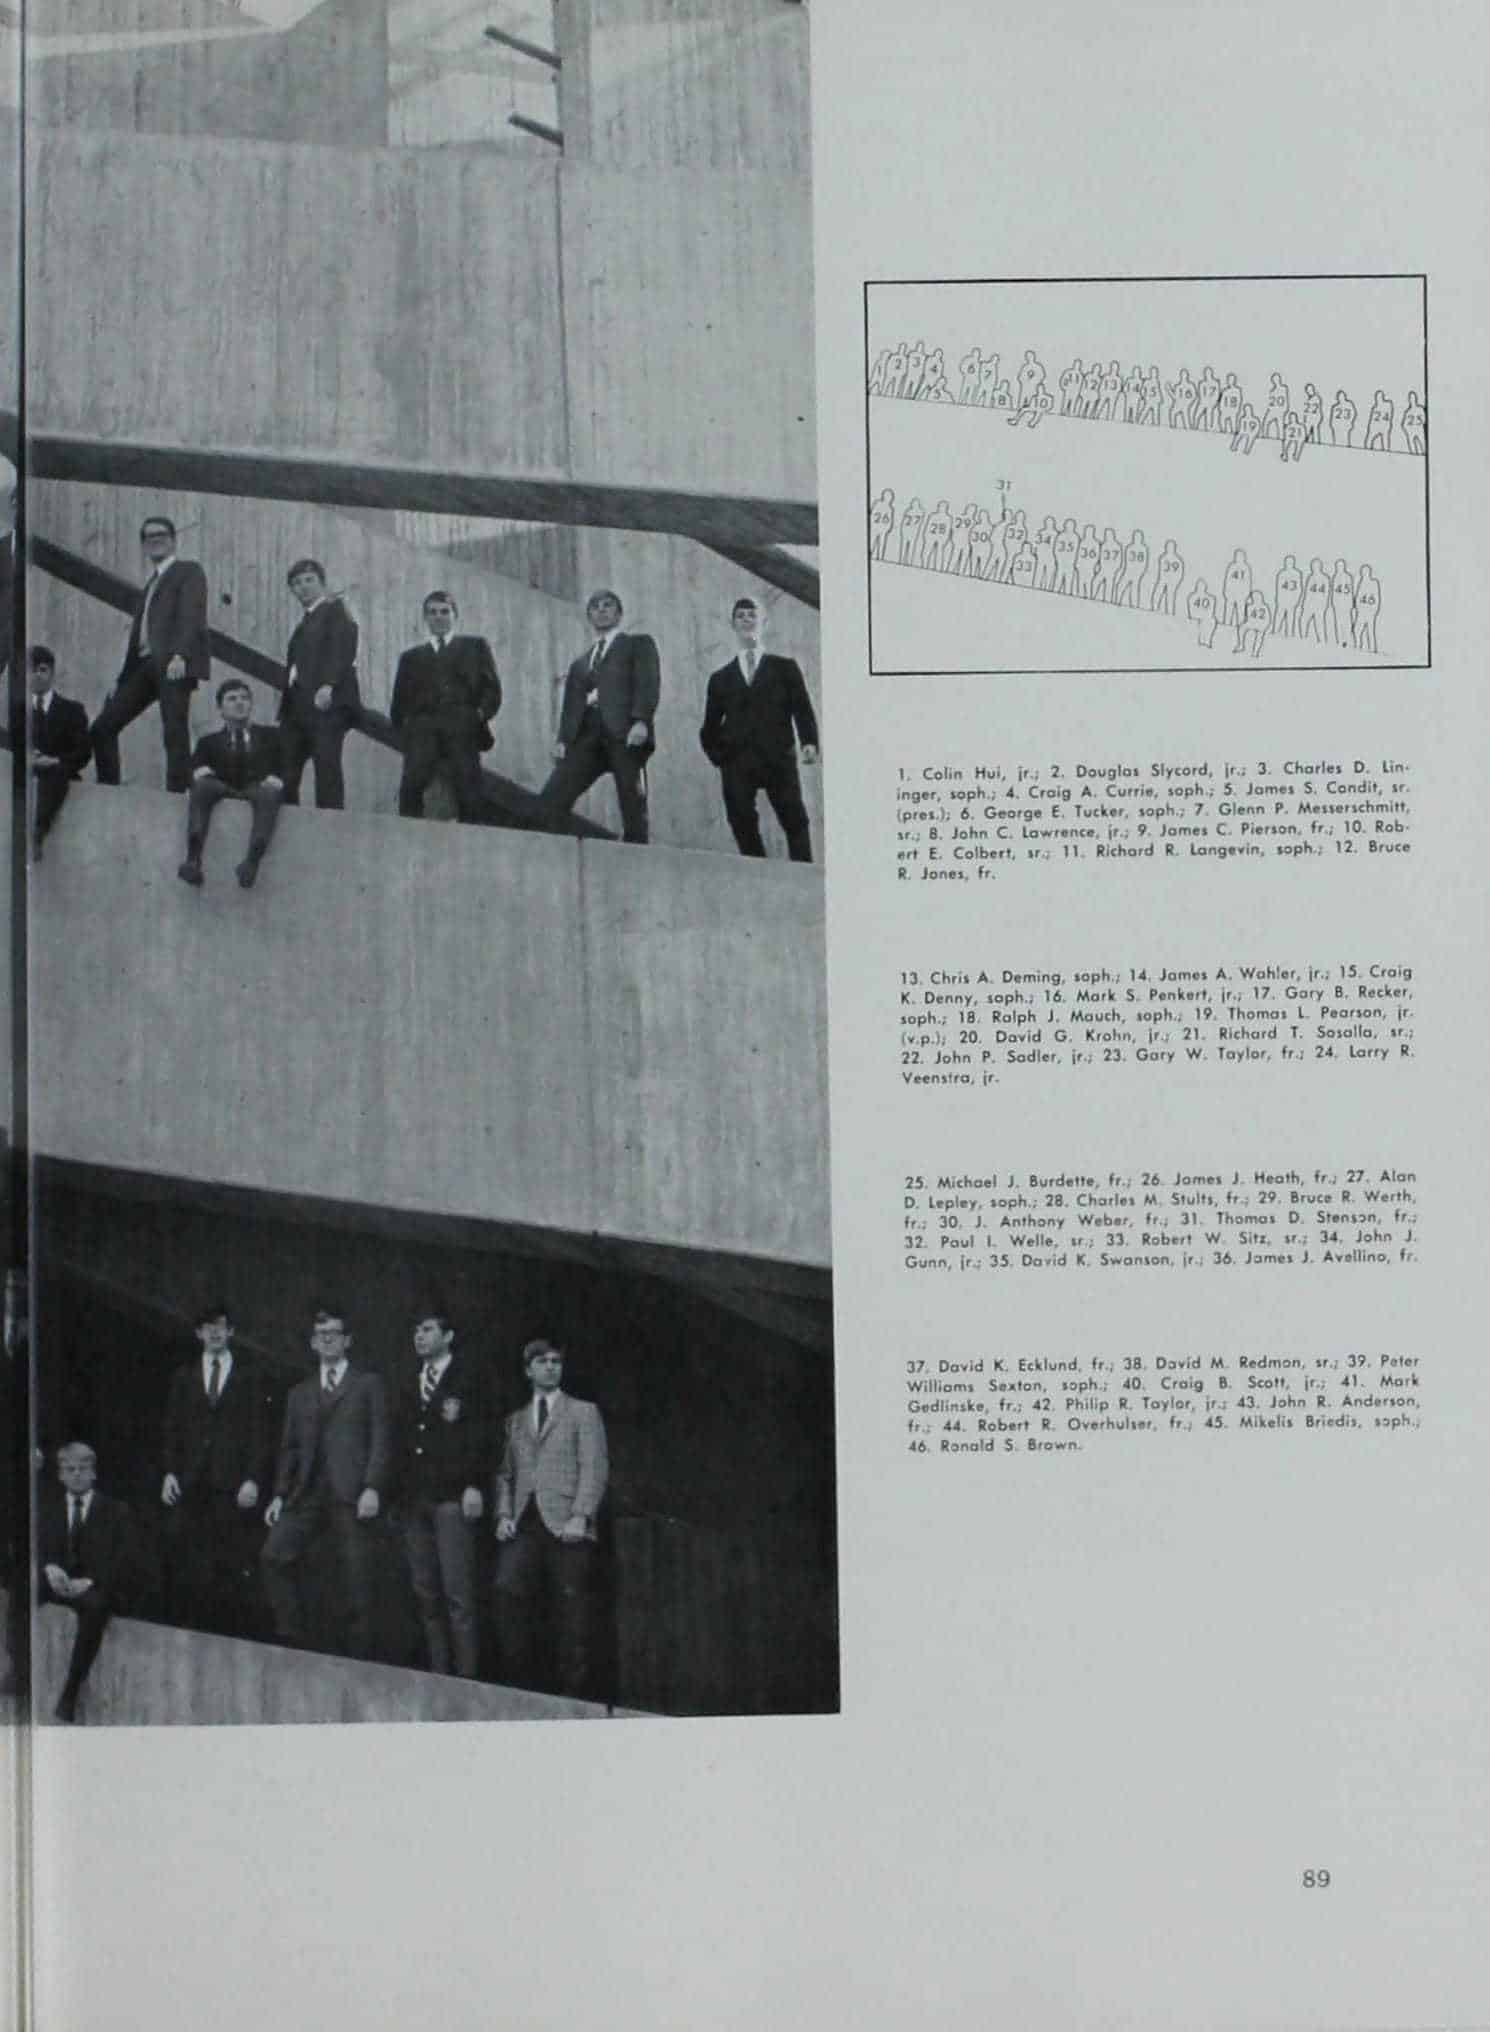 1969 Iowa State Yearbook p.2